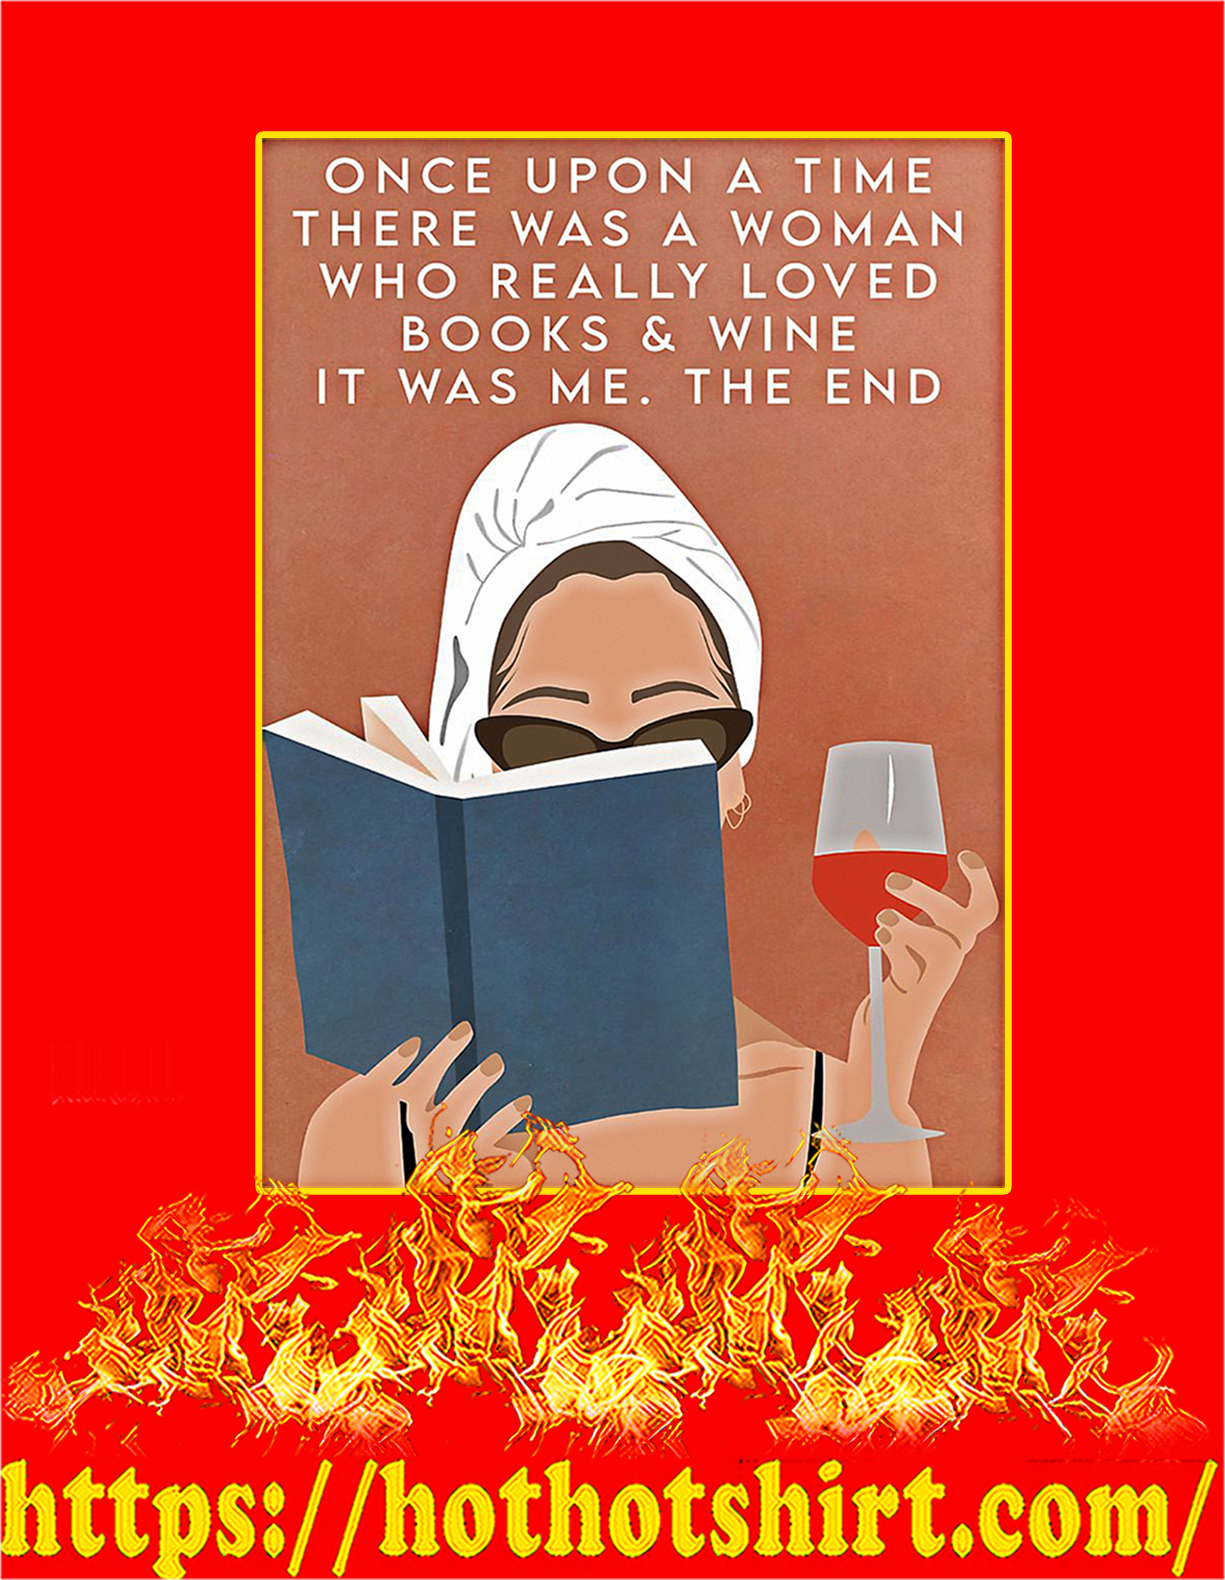 Once upon a time there was a woman who really loved books and wine poster - A4